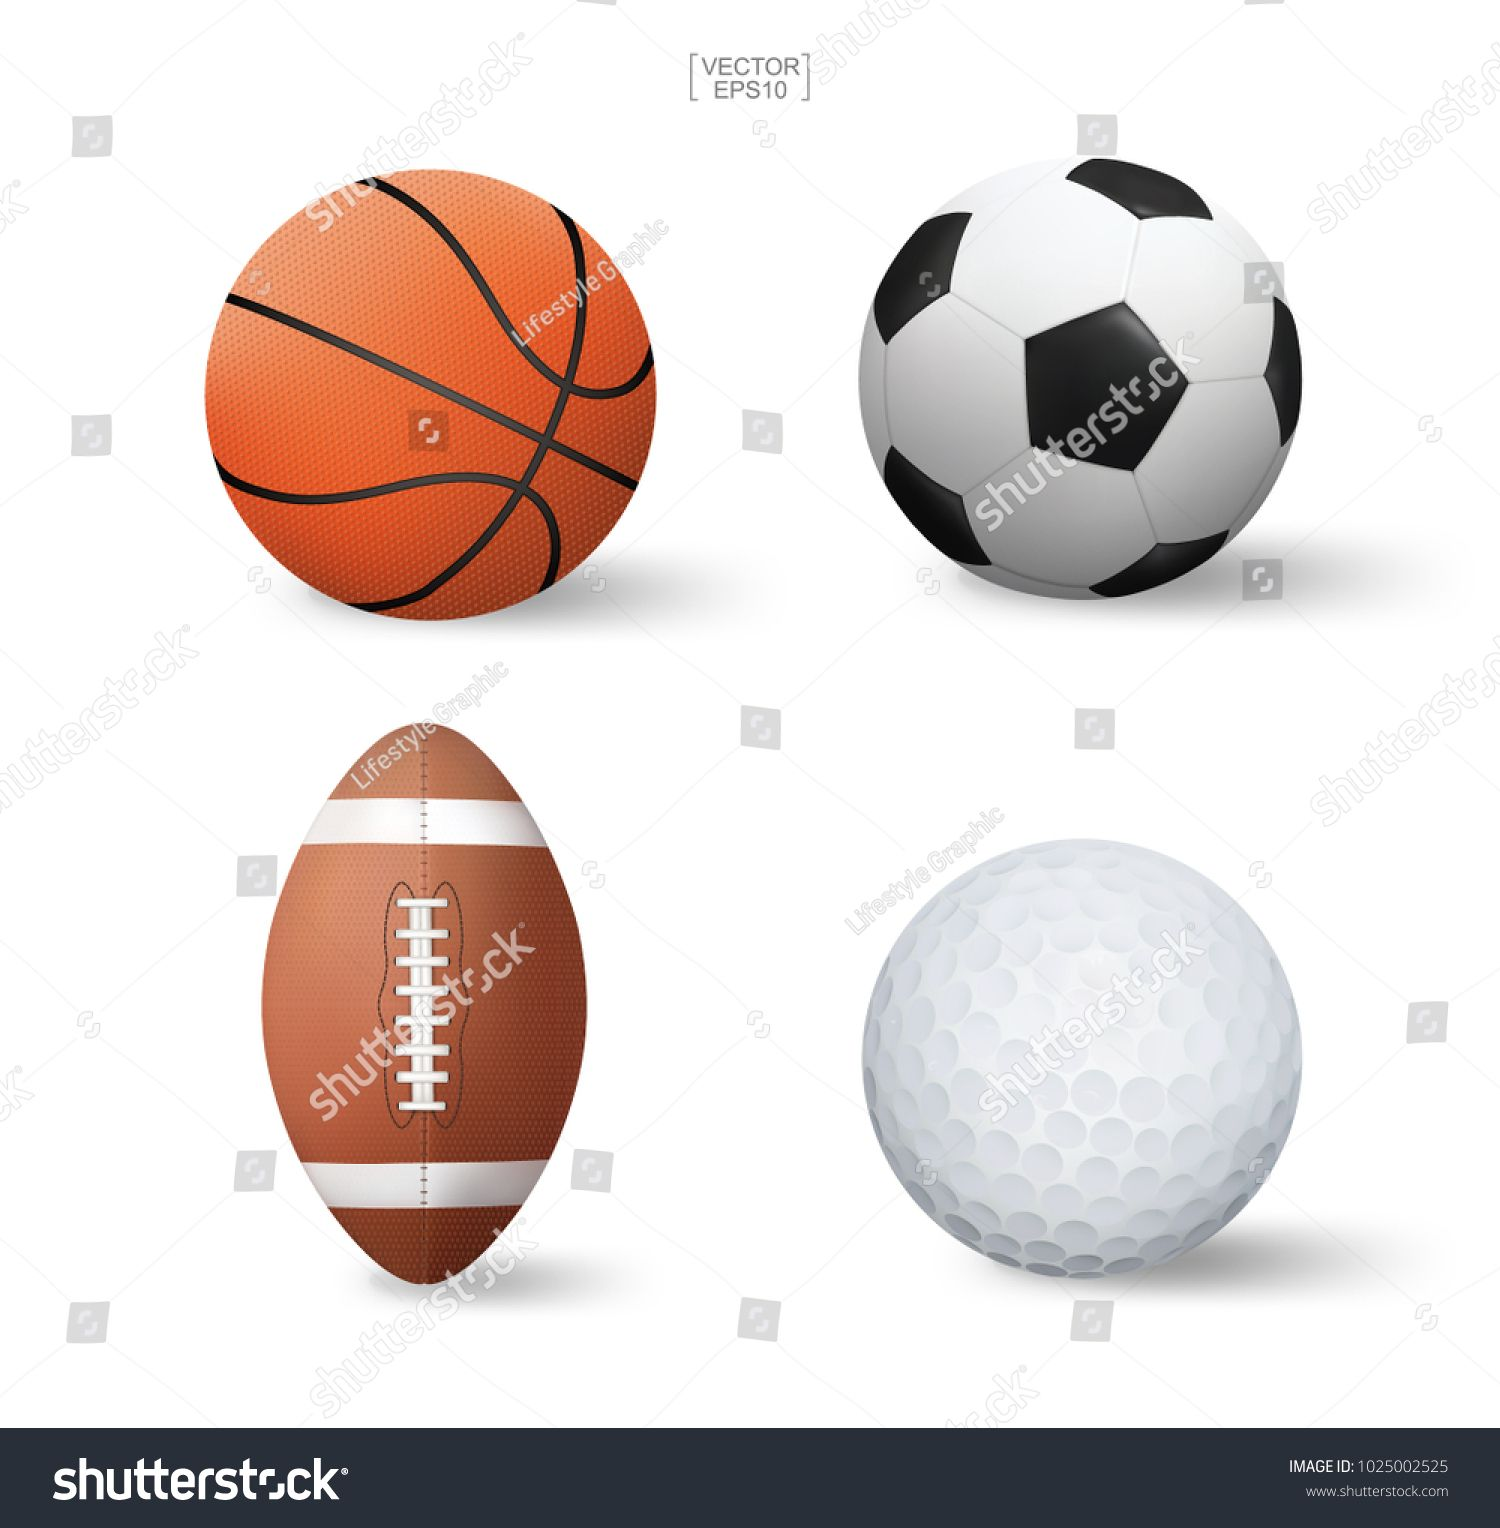 Vector Realistic Sports Ball Set Basketball Soccer Football American Football And Golf Isolated On White Backgro Poster Design Sports Balls Christmas Design